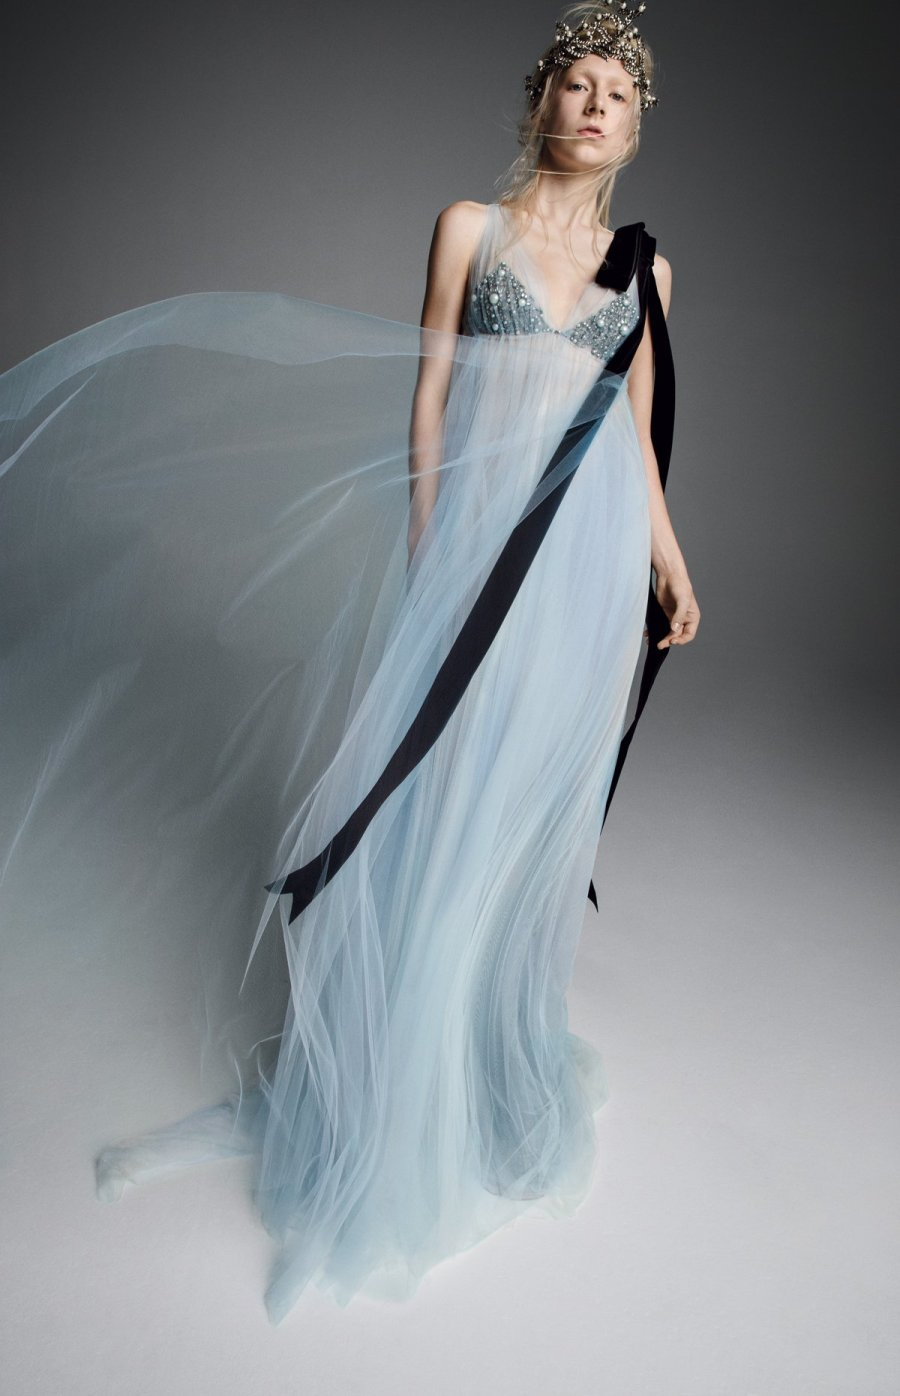 Wedding dress collection: Vera Wang – Fall 2019